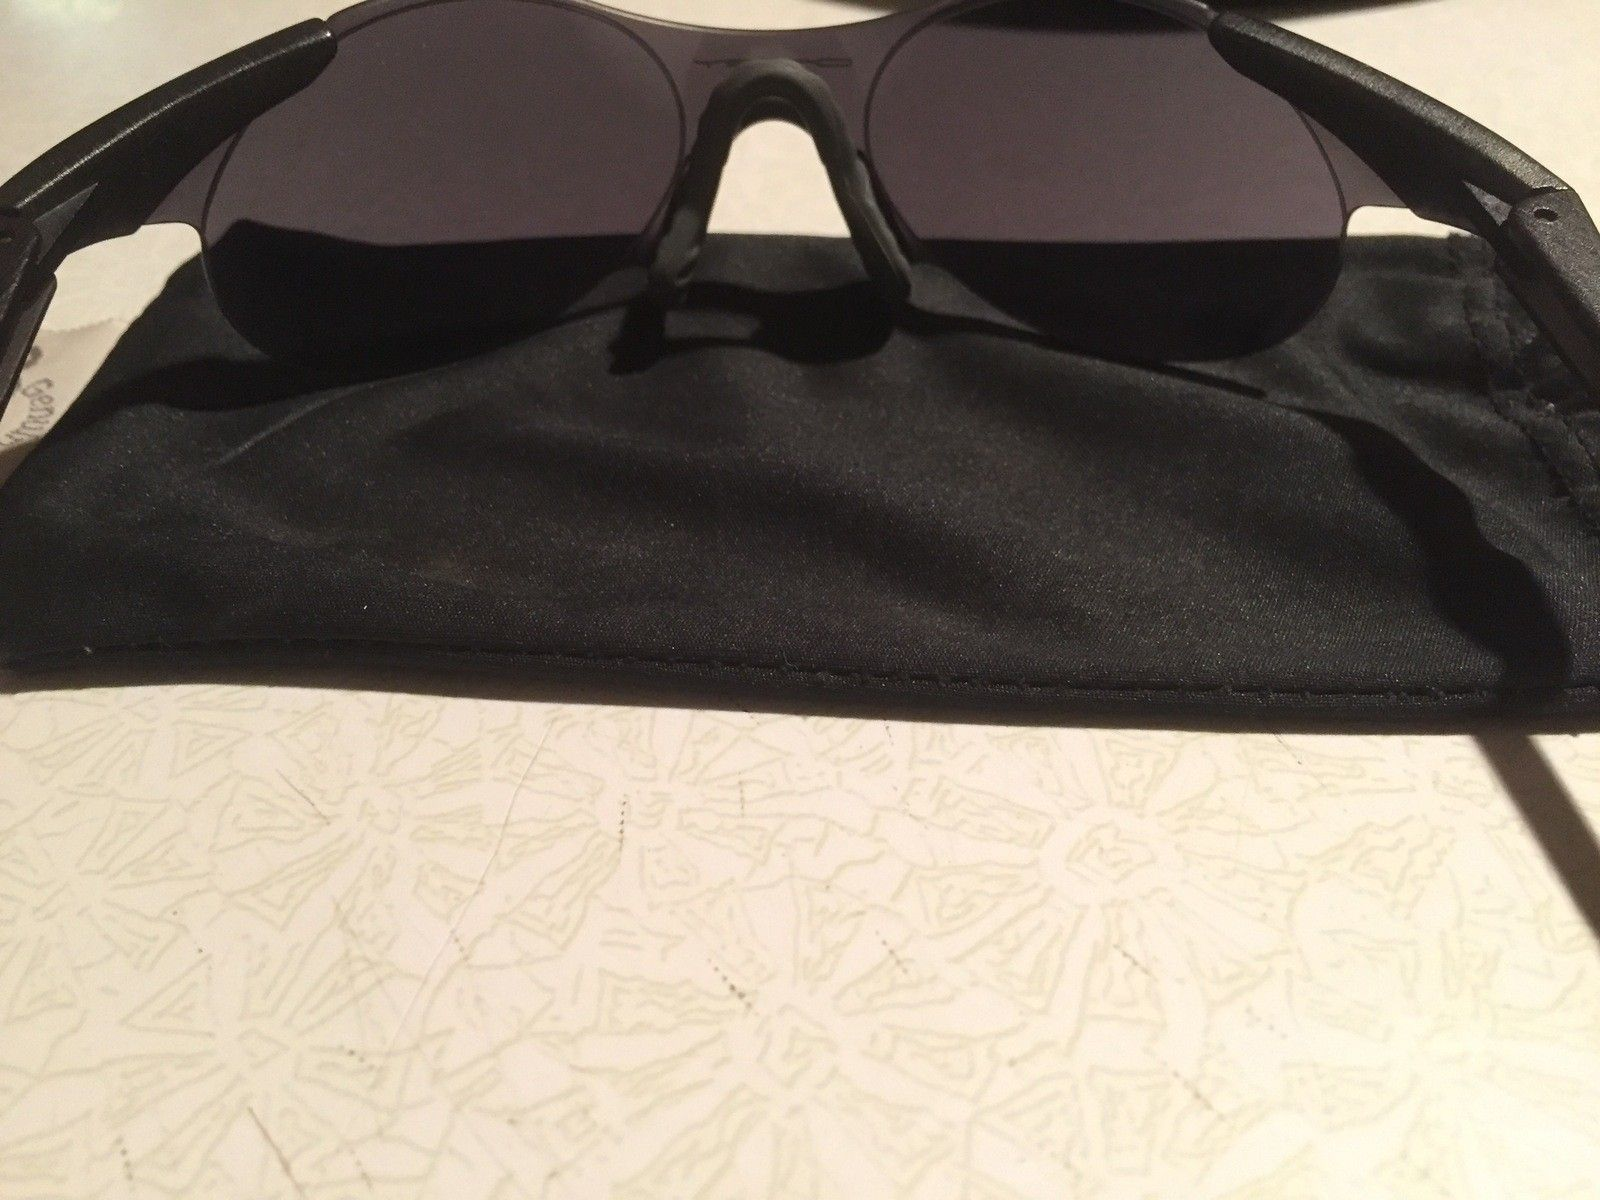 Oakley Zero - How to tell if they are 0.1? - image.jpeg